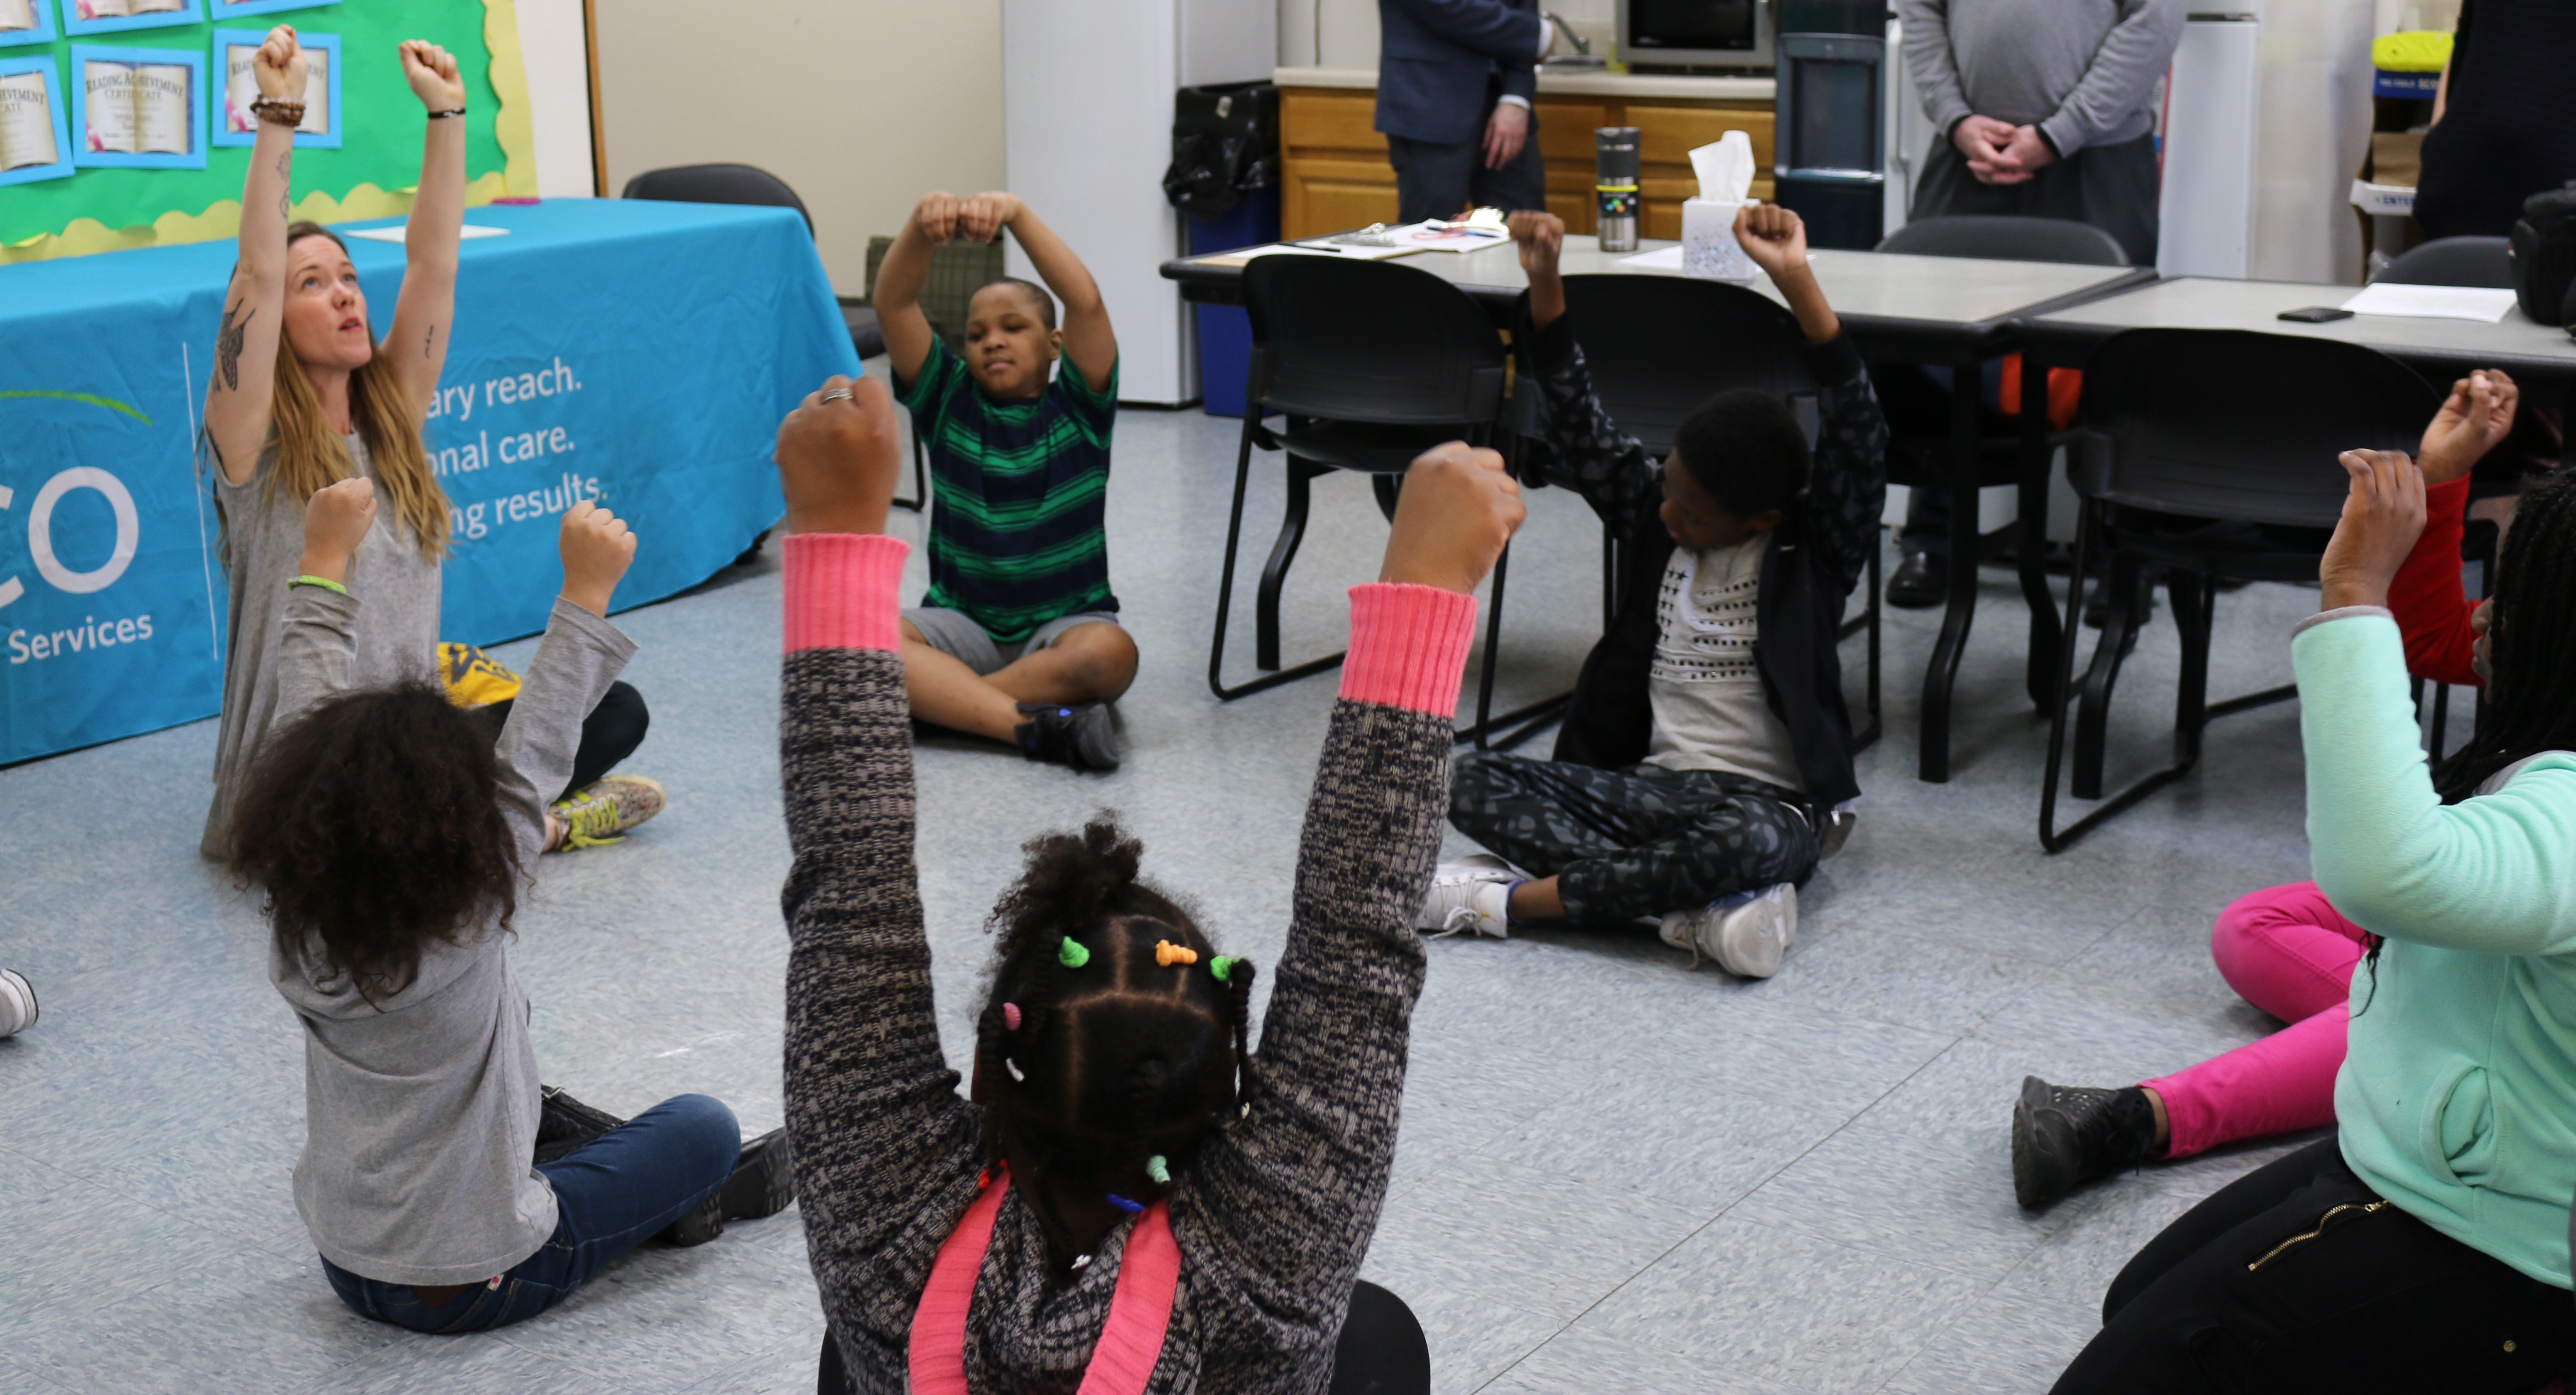 Students at the Flushing Family Residence, a shelter for homeless families, participate in a previous spring arts camp. The city is promising to wire all family shelters with Wi-Fi access.